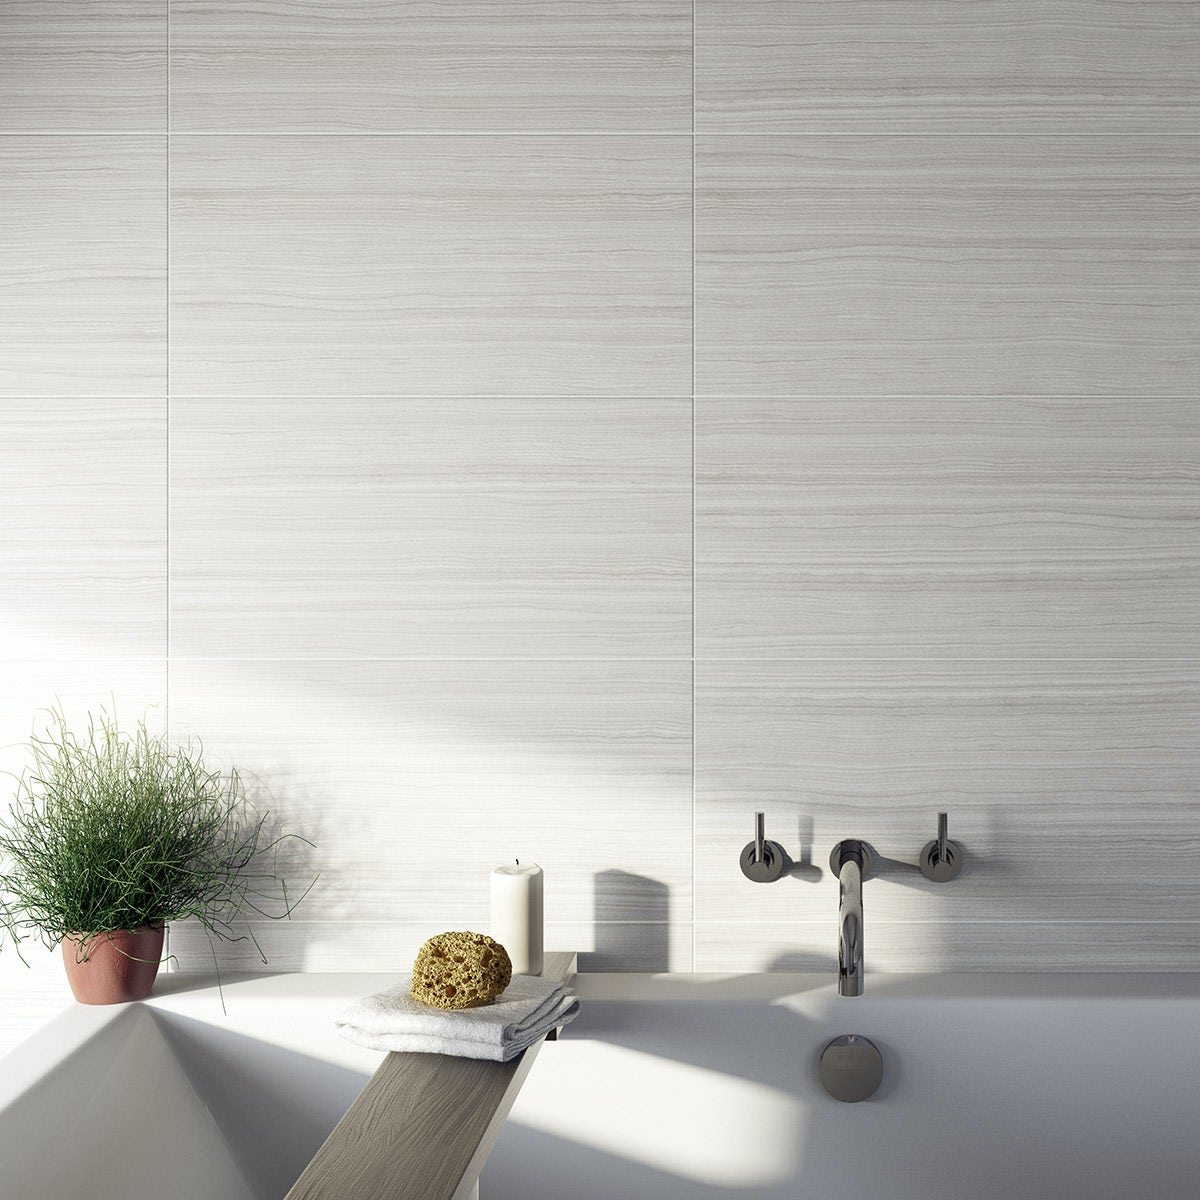 British Ceramic Tile Mirage grey gloss tile 298mm x 598mm - Sold by Victoria Plum